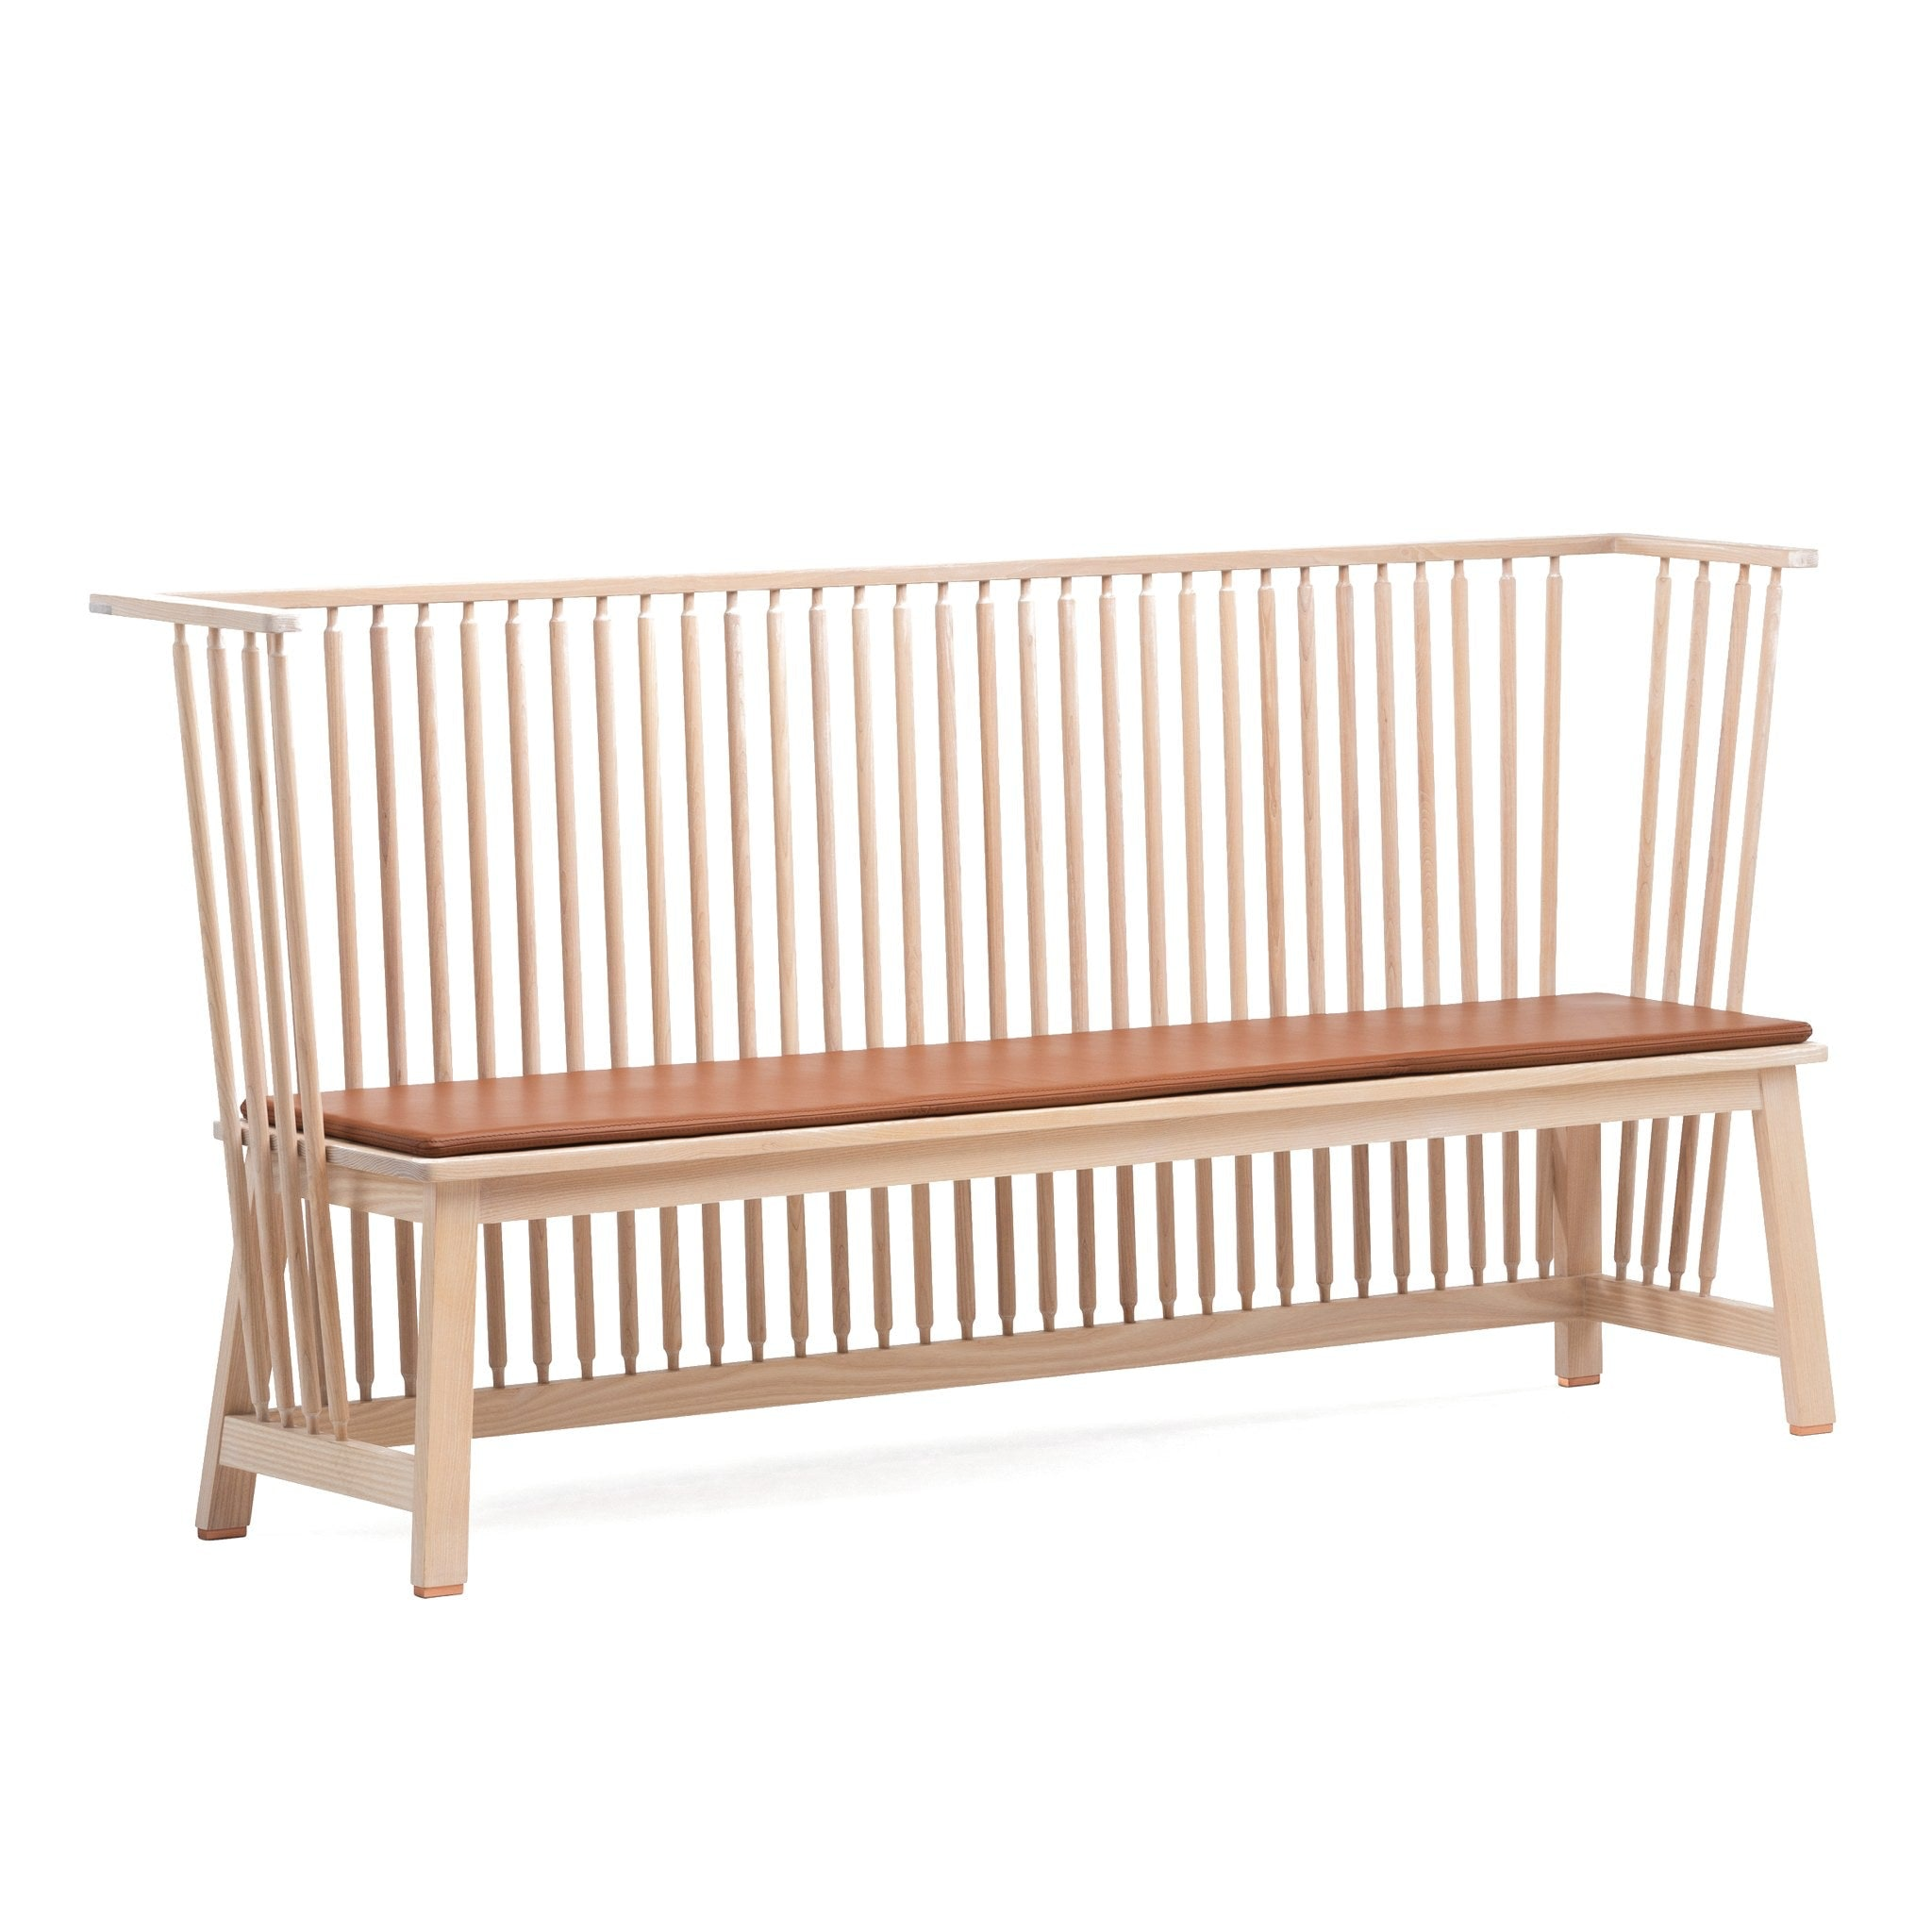 Settle Bench Low by Ilse Crawford